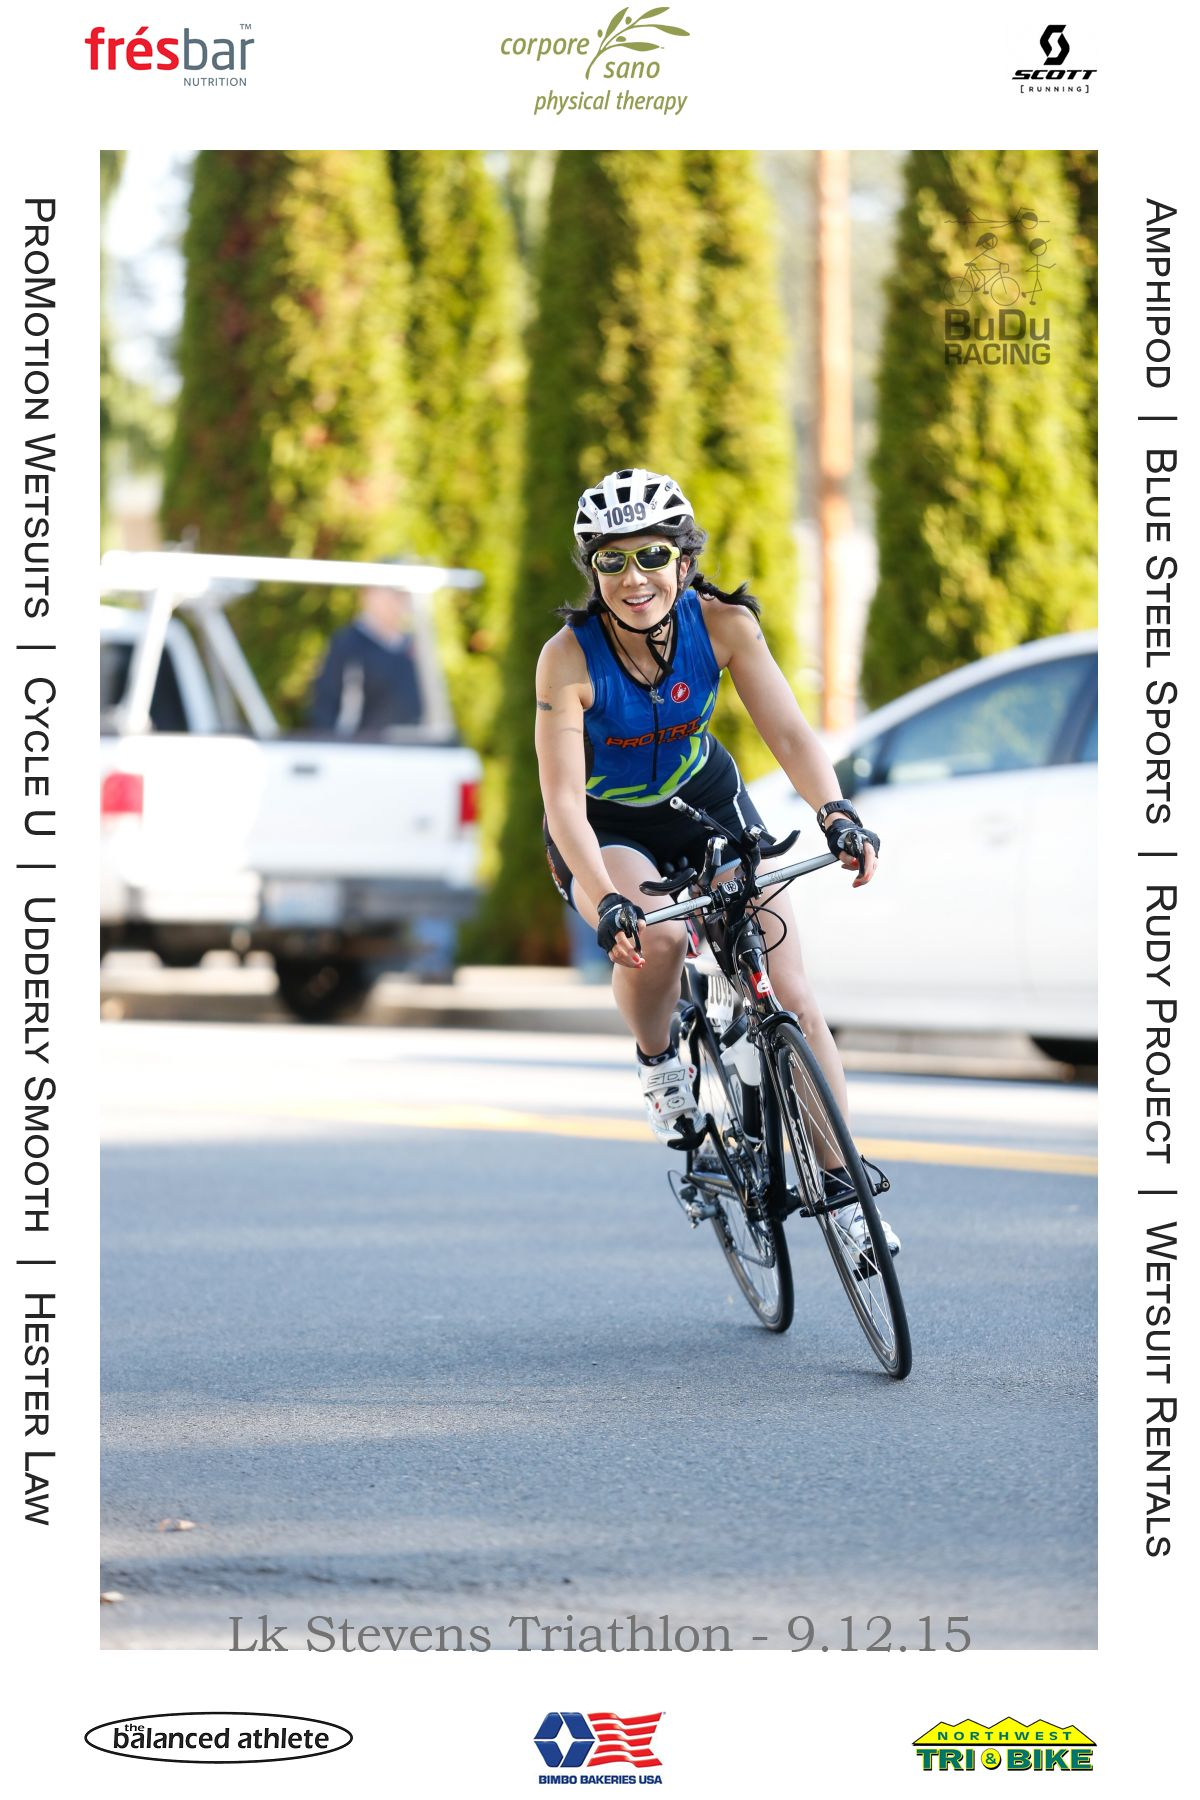 Woman riding a bike during a triathlon?